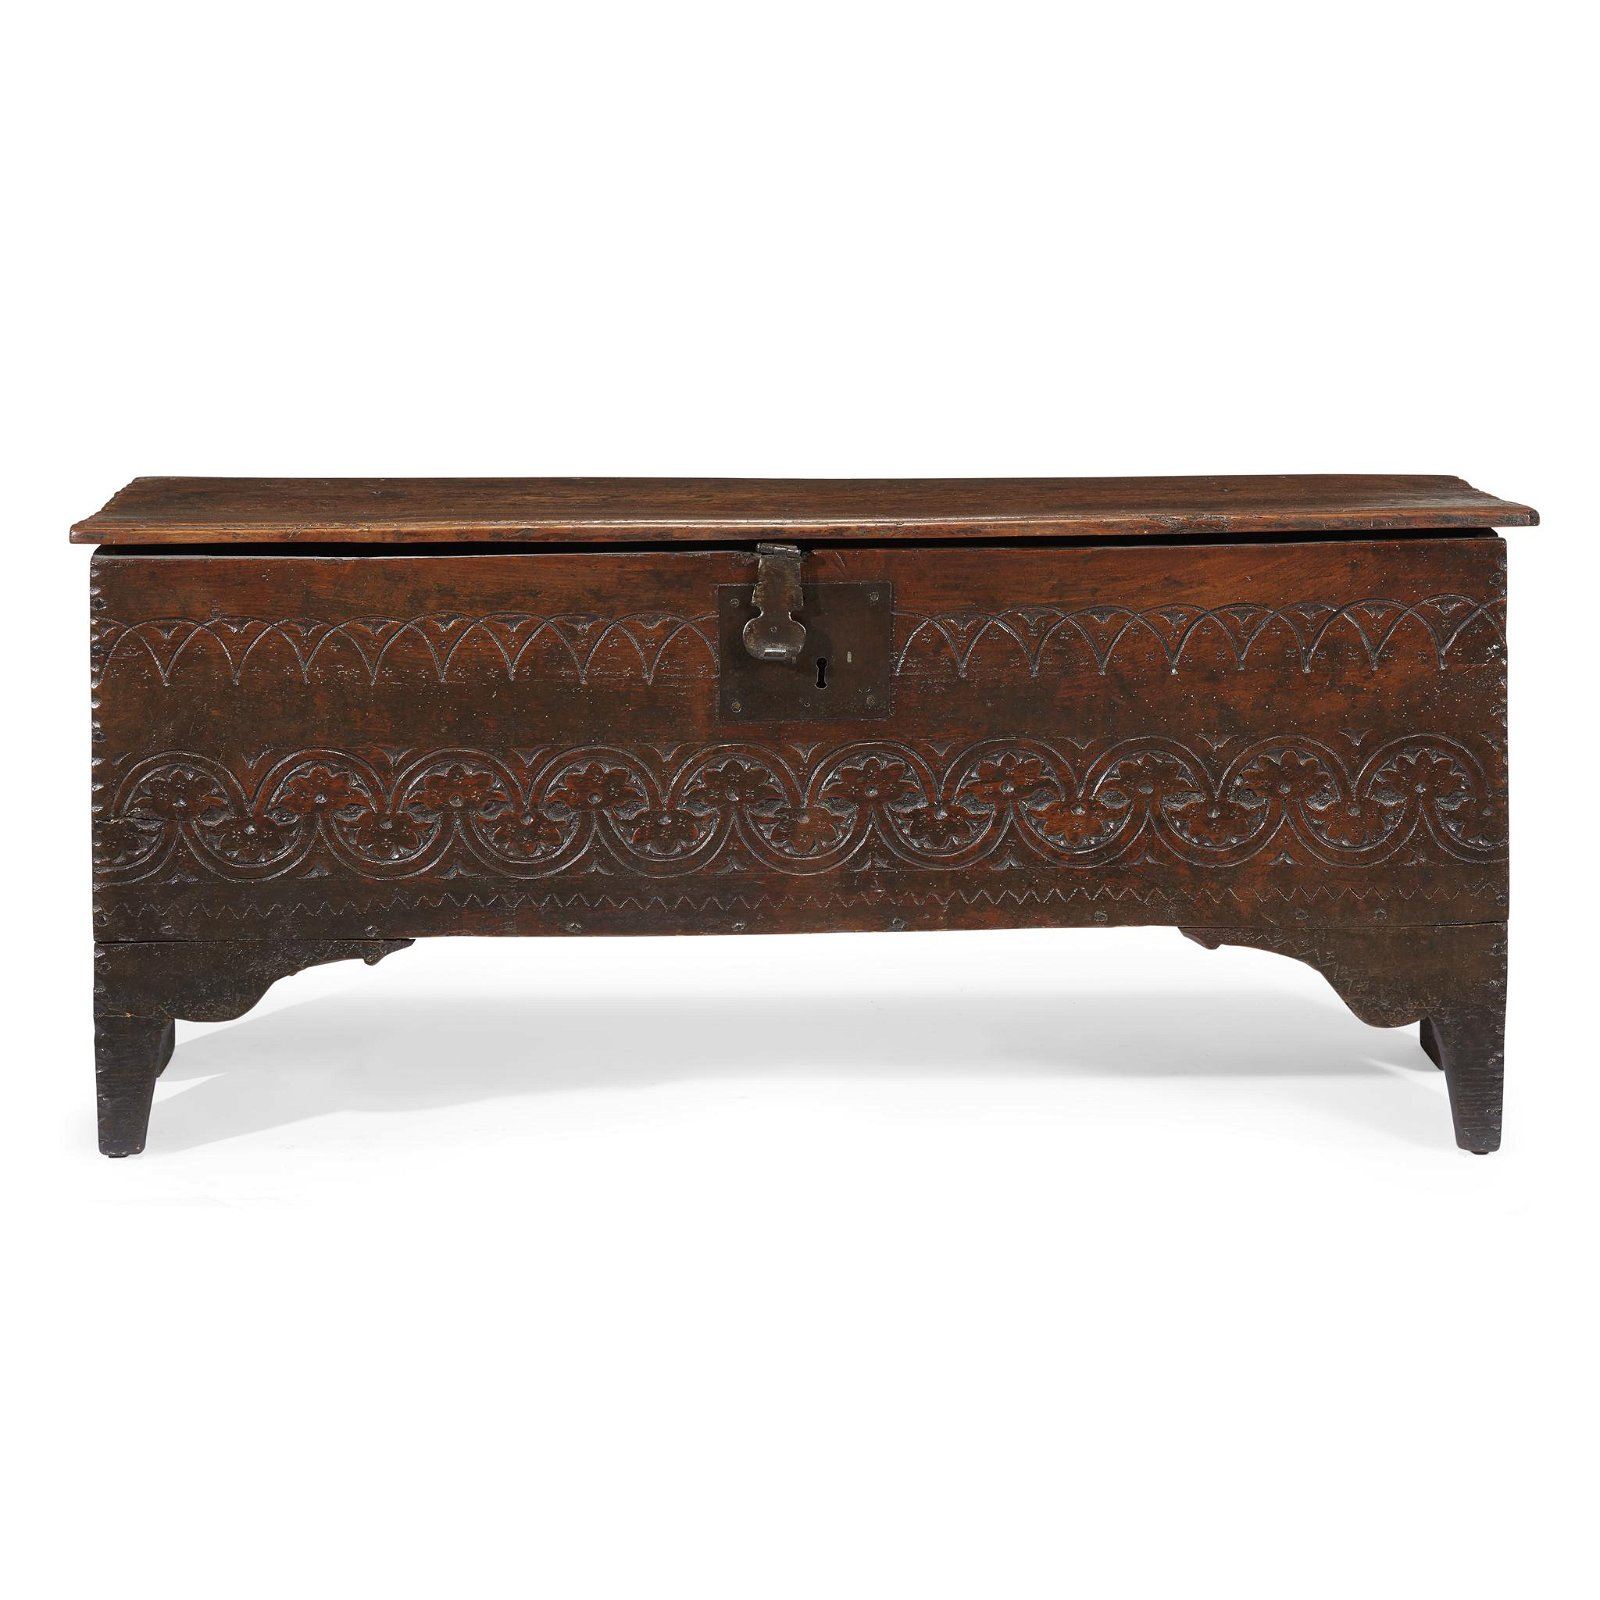 Carved oak coffer, English, late 17th century